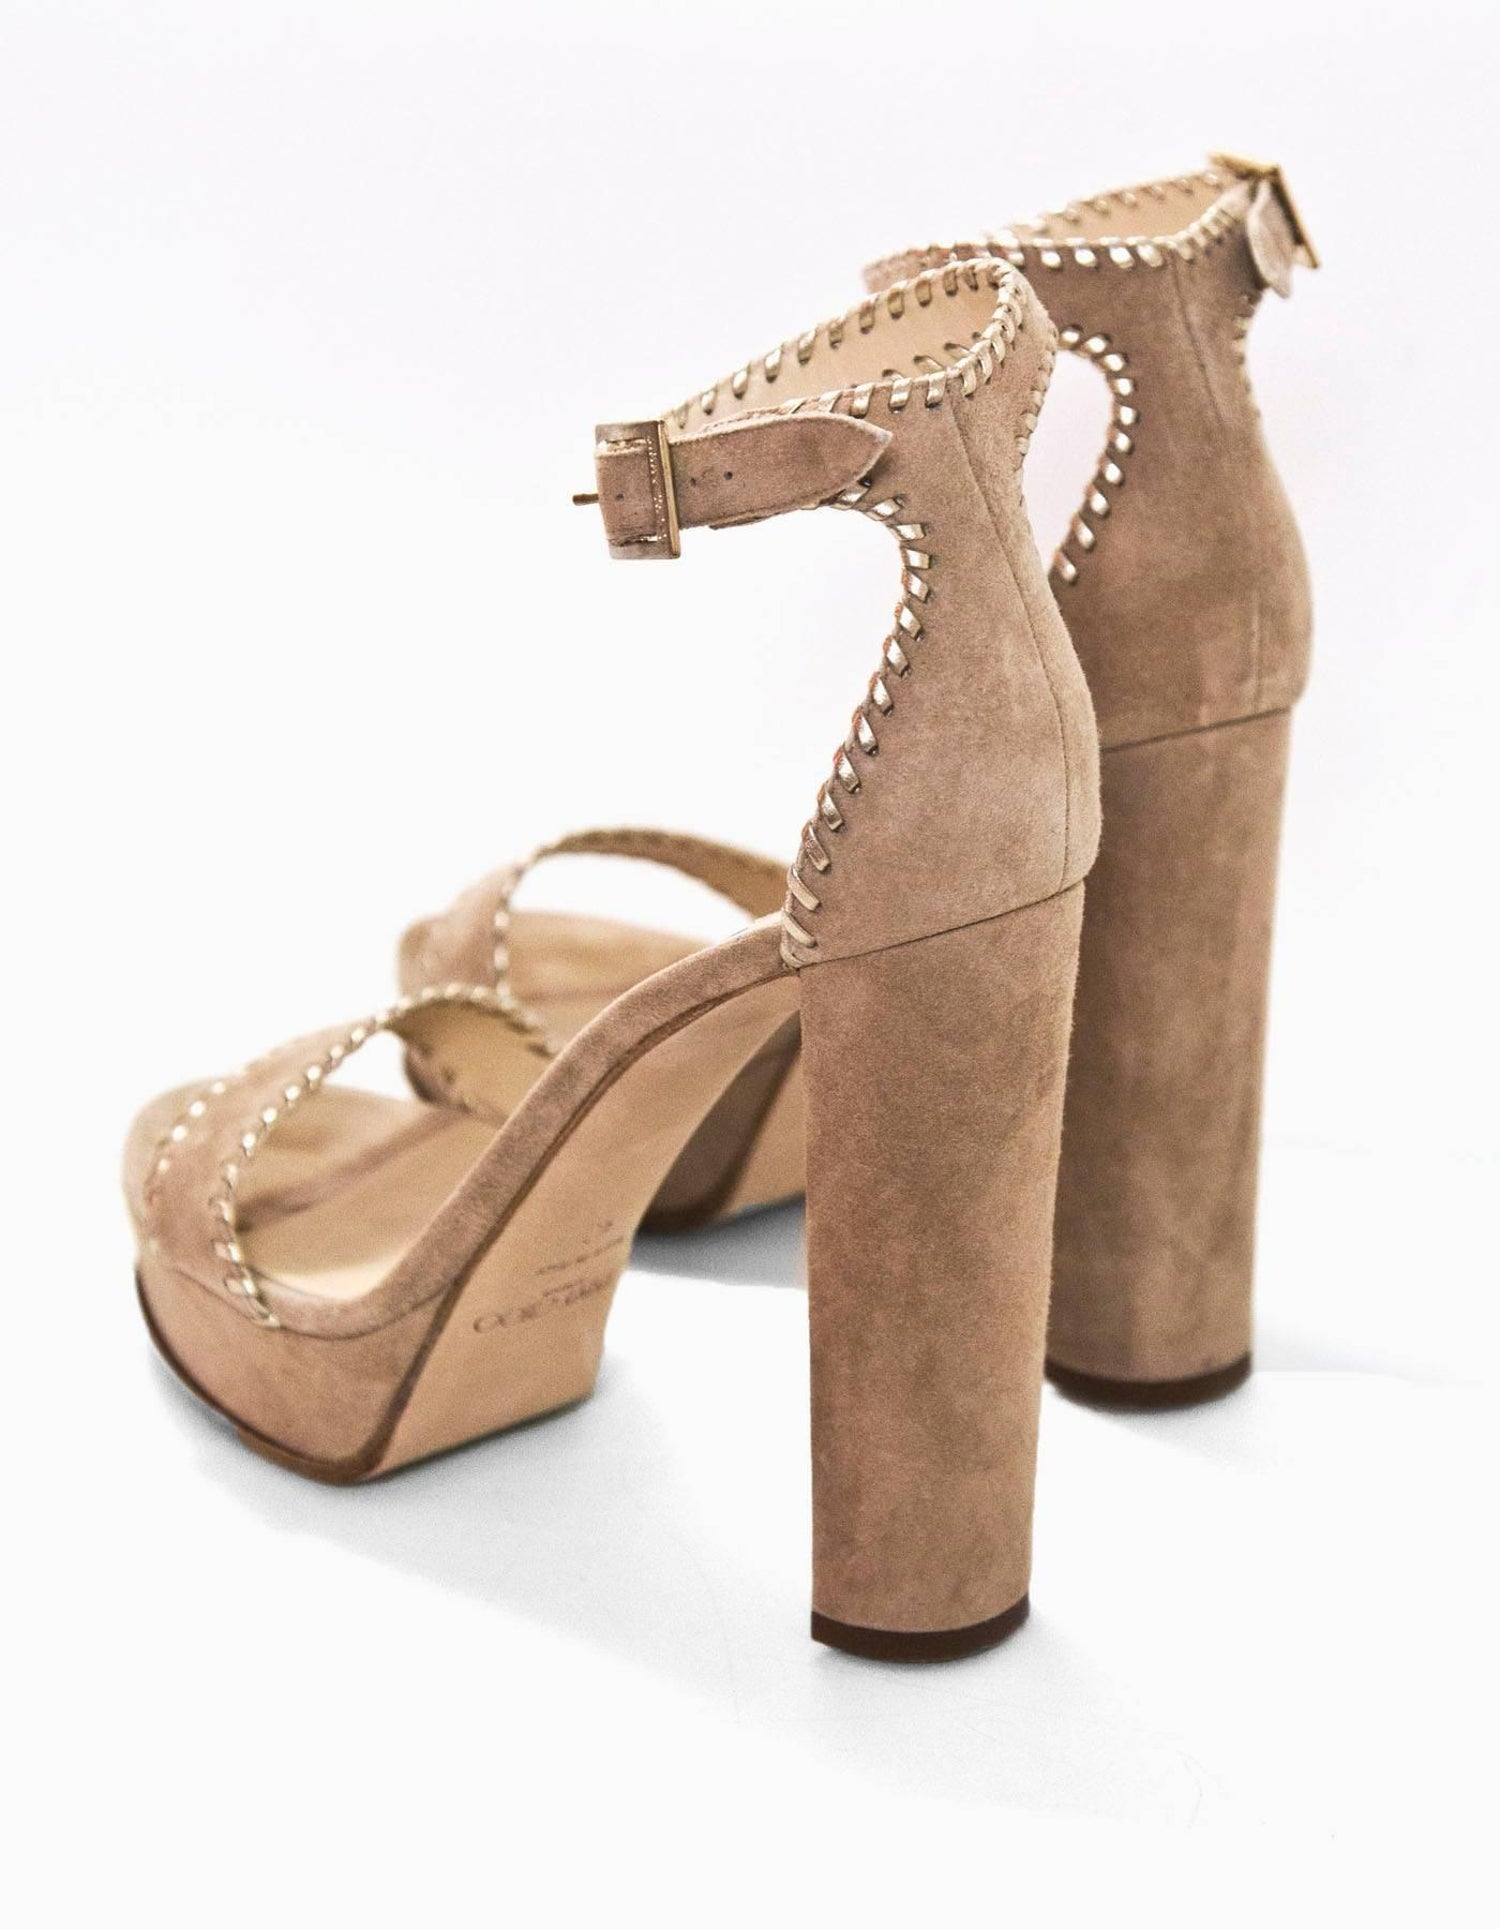 61d71921557 Jimmy Choo Nude Suede Holly Sandals Sz 40 For Sale at 1stdibs